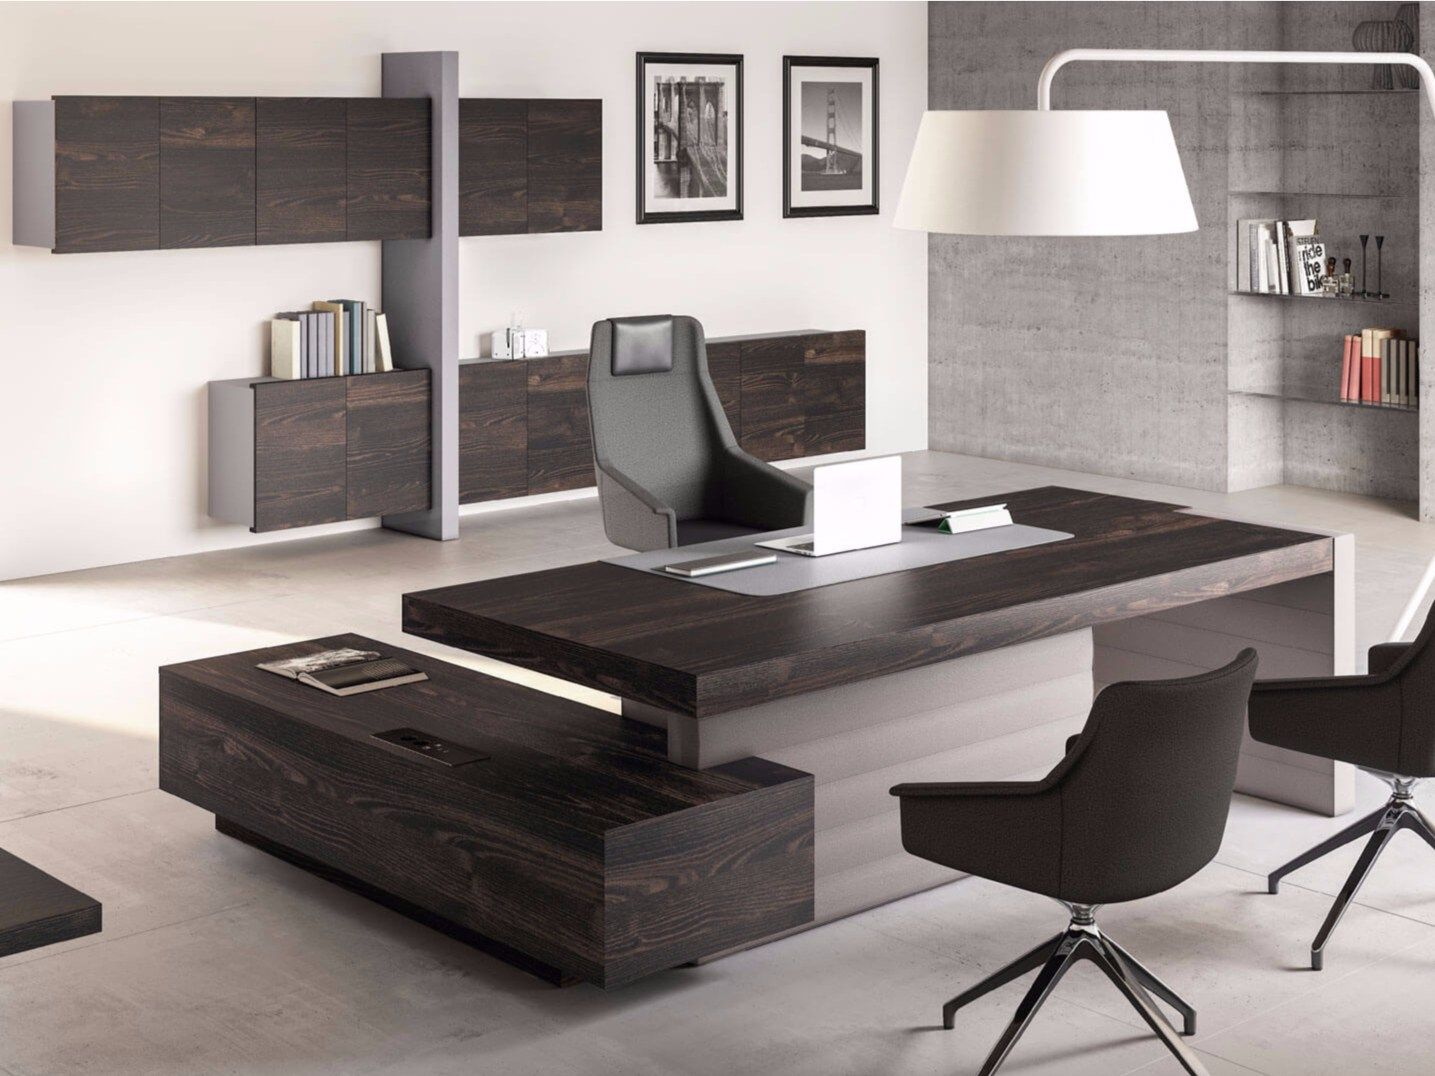 cupboard desk fleifel simple desks orig dubai design modern for lebanon office store executive furniture